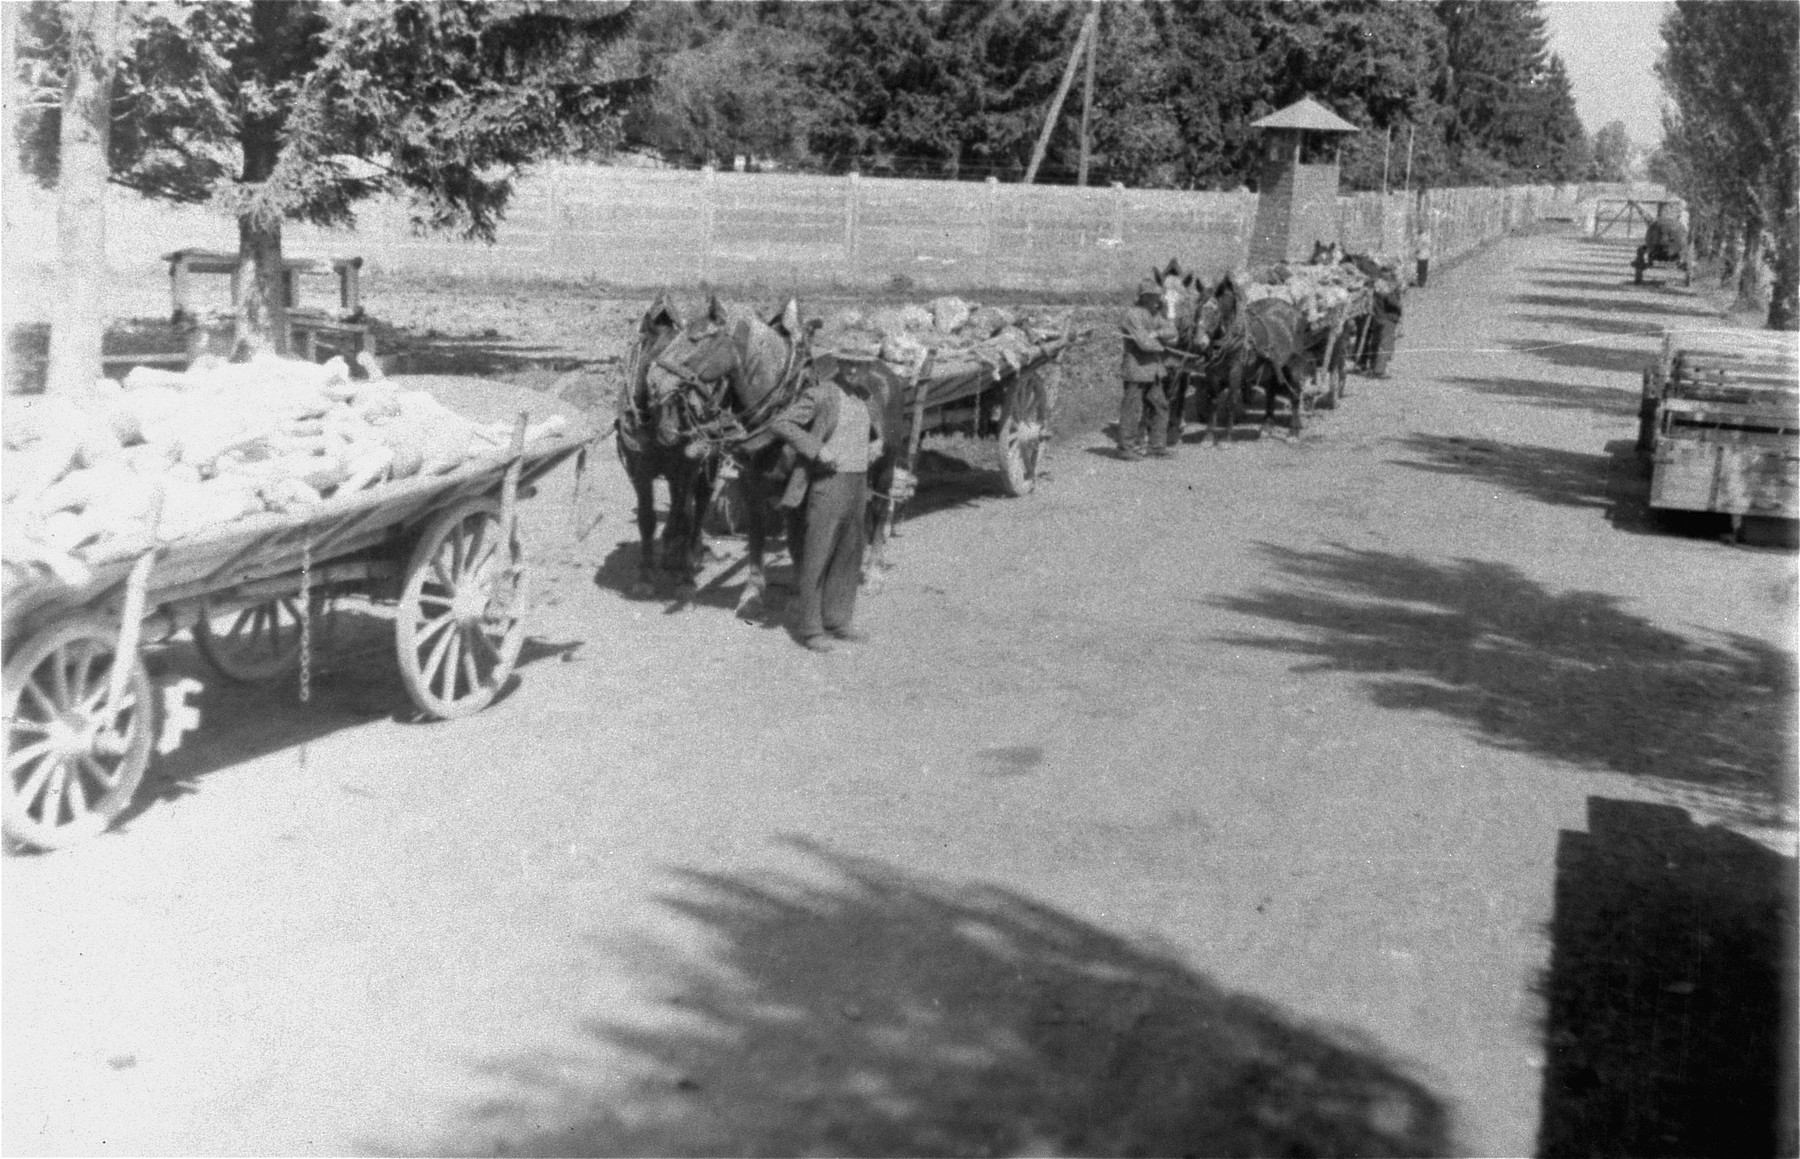 German civilians transporting corpses from the Dachau concentration camp to a nearby site for burial.